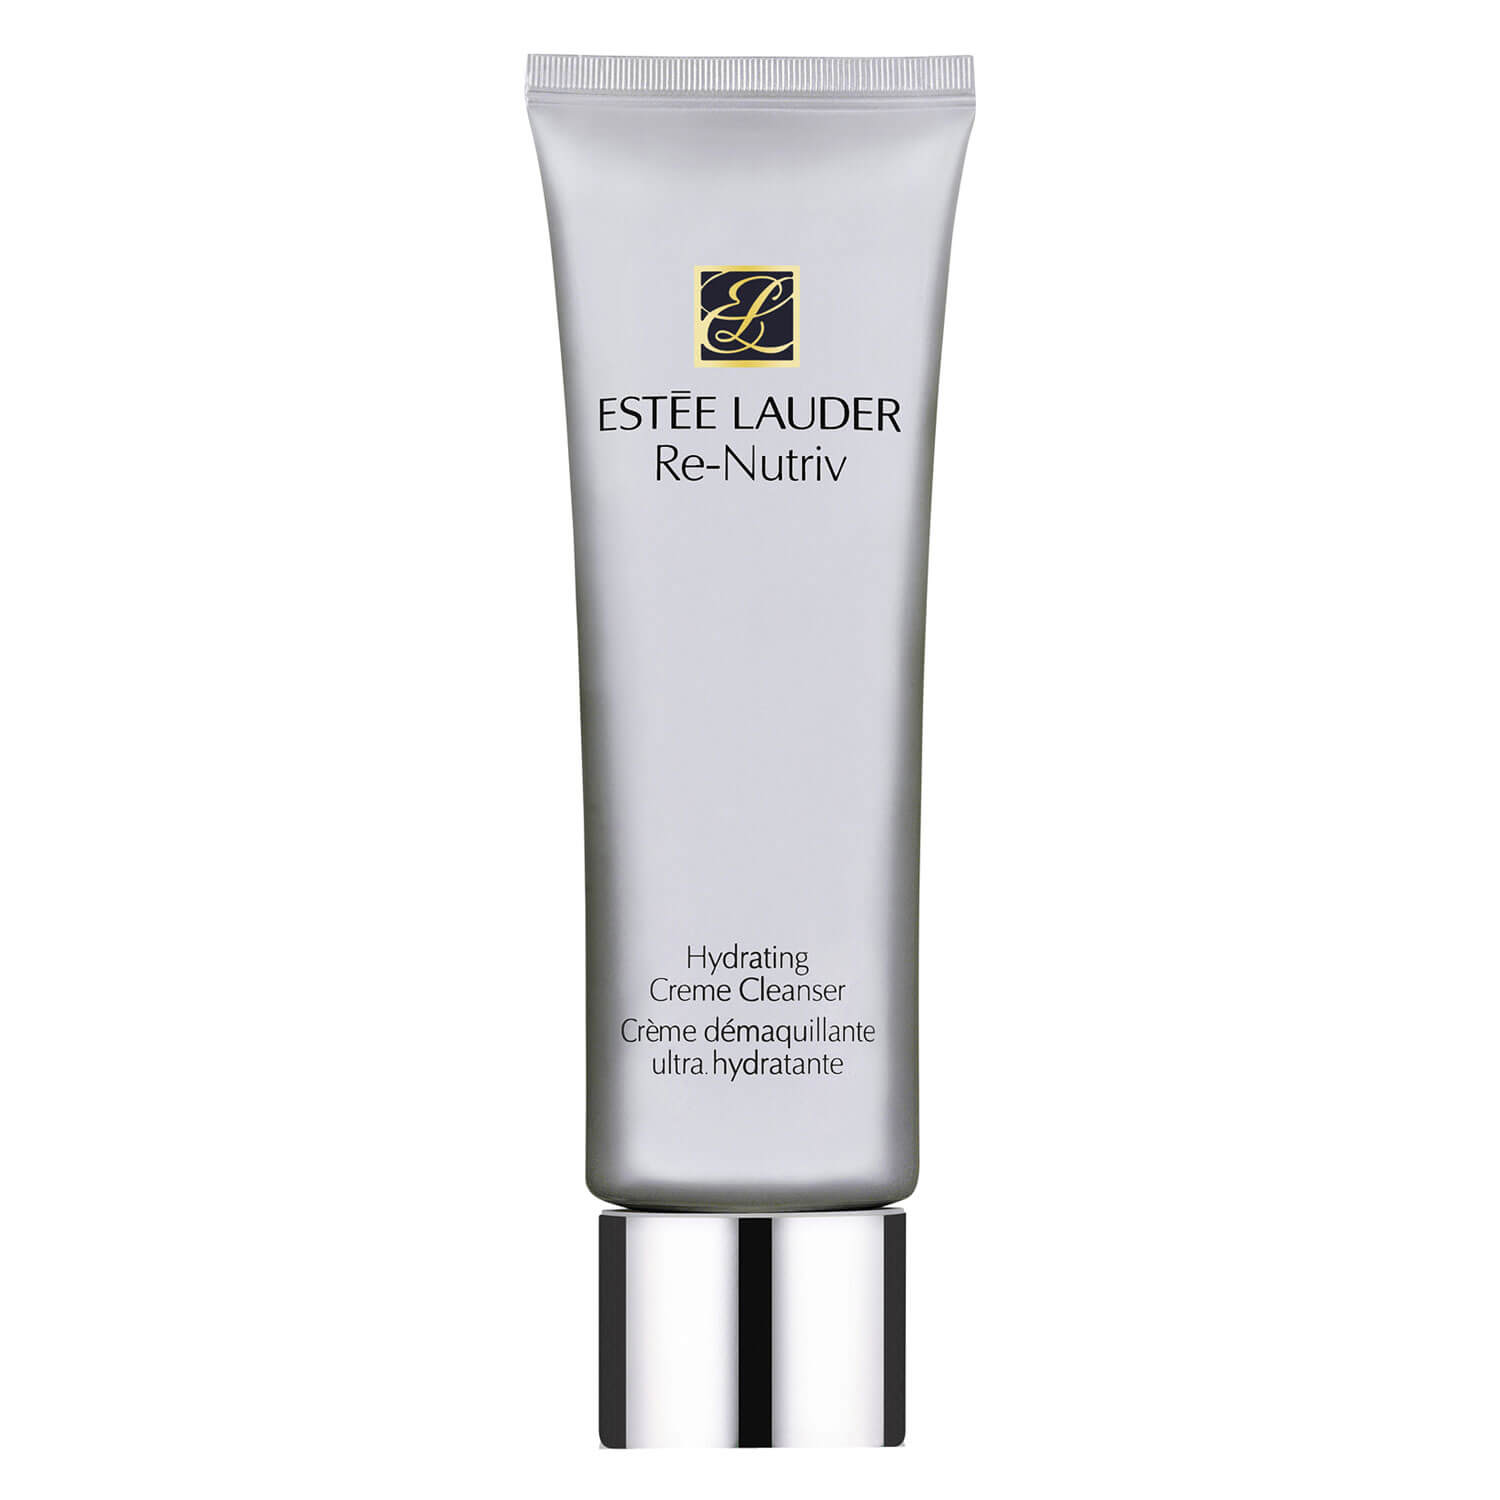 Re-Nutriv - Hydrating Creme Cleanser